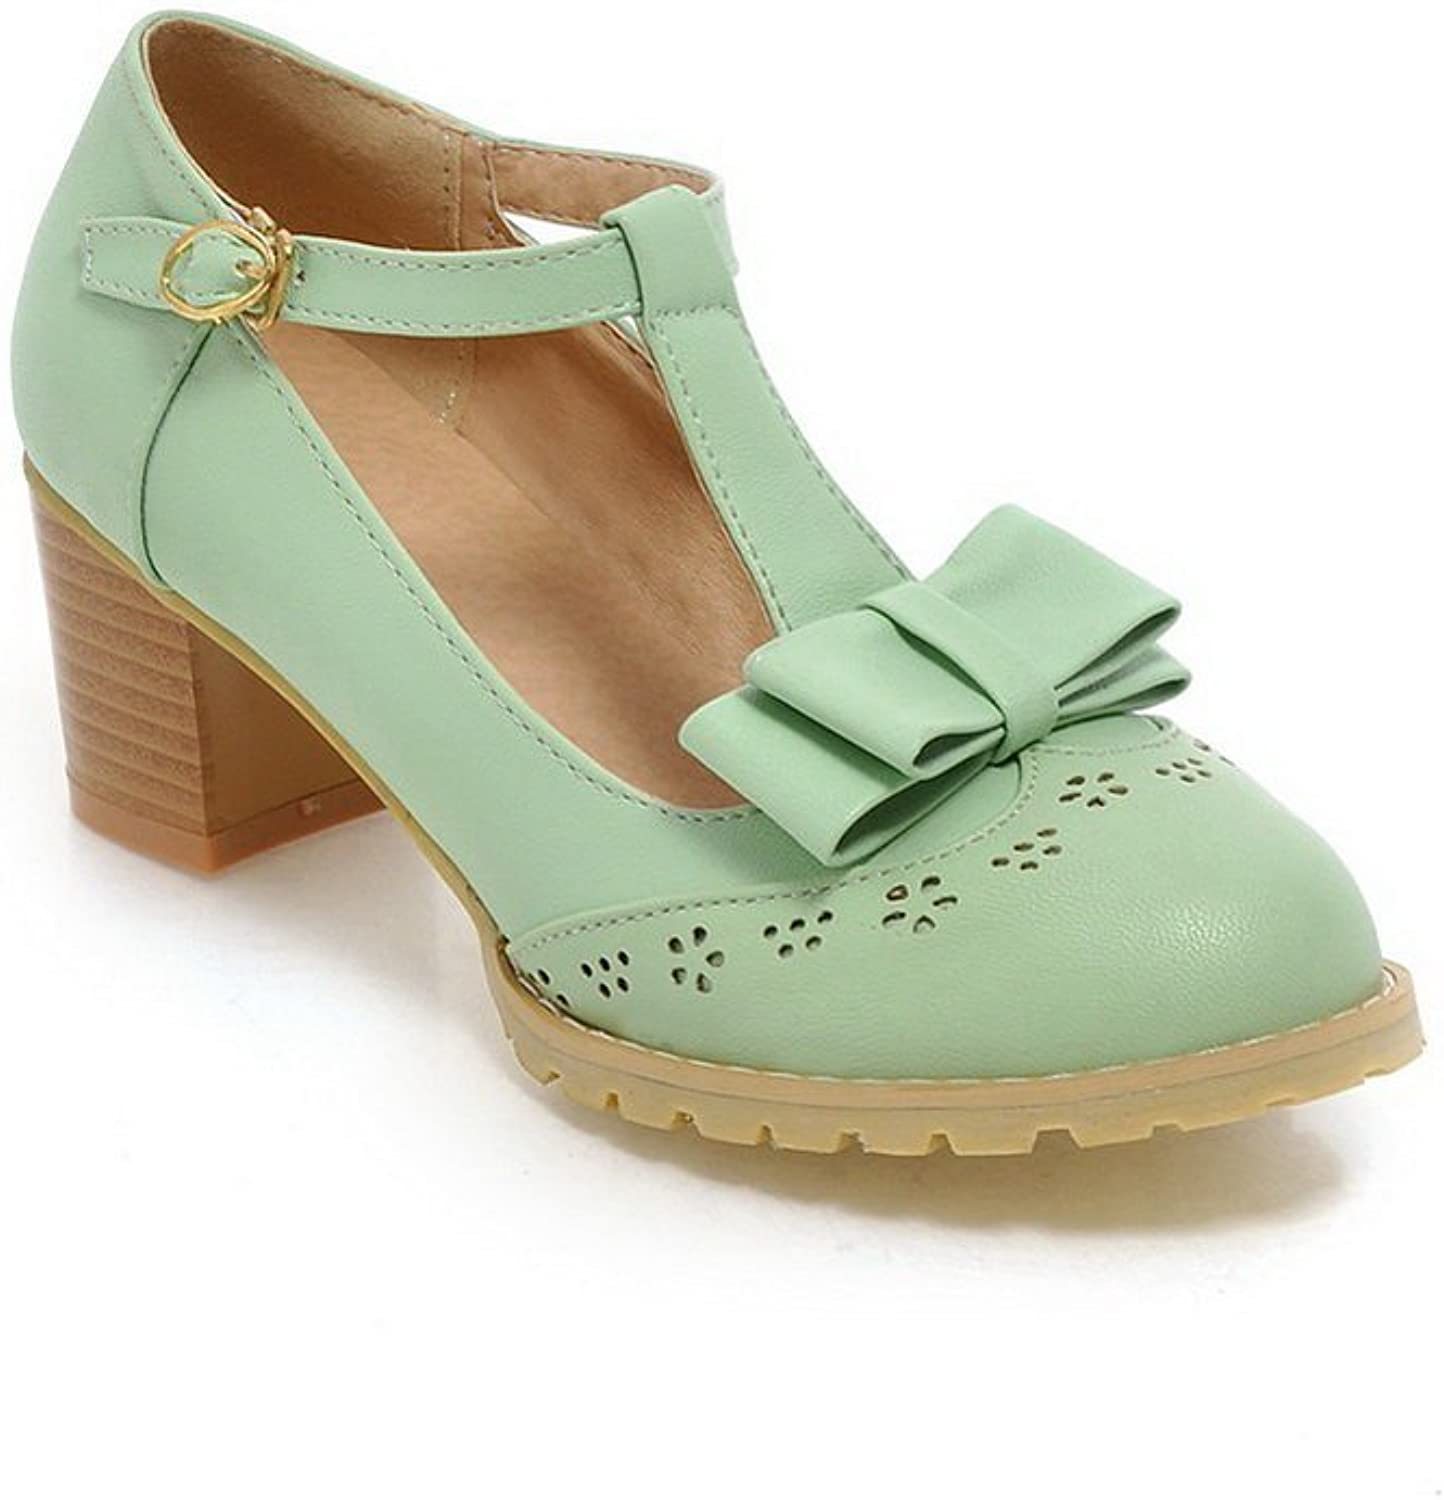 1TO9 Girls Buckle Hollow Out Round-Toe Engagement Green Polyurethane Pumps-shoes - 7.5 B(M) US